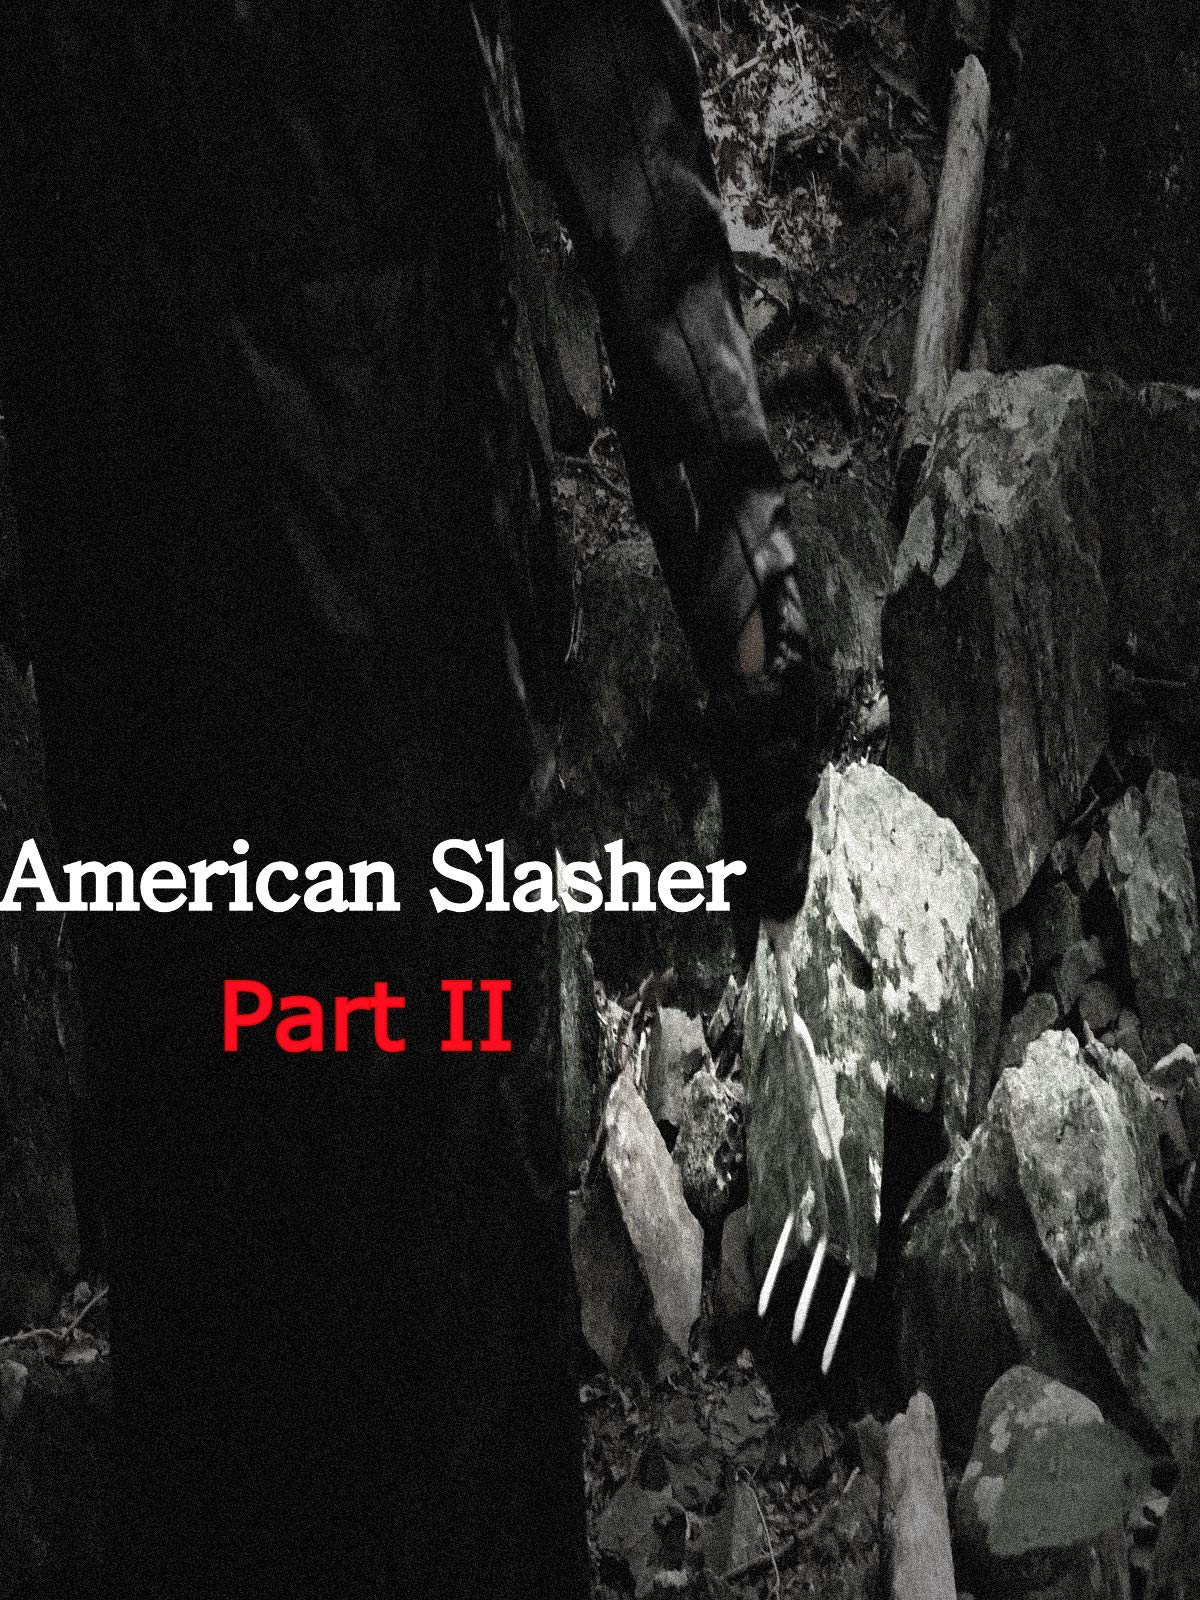 American Slasher: Part II